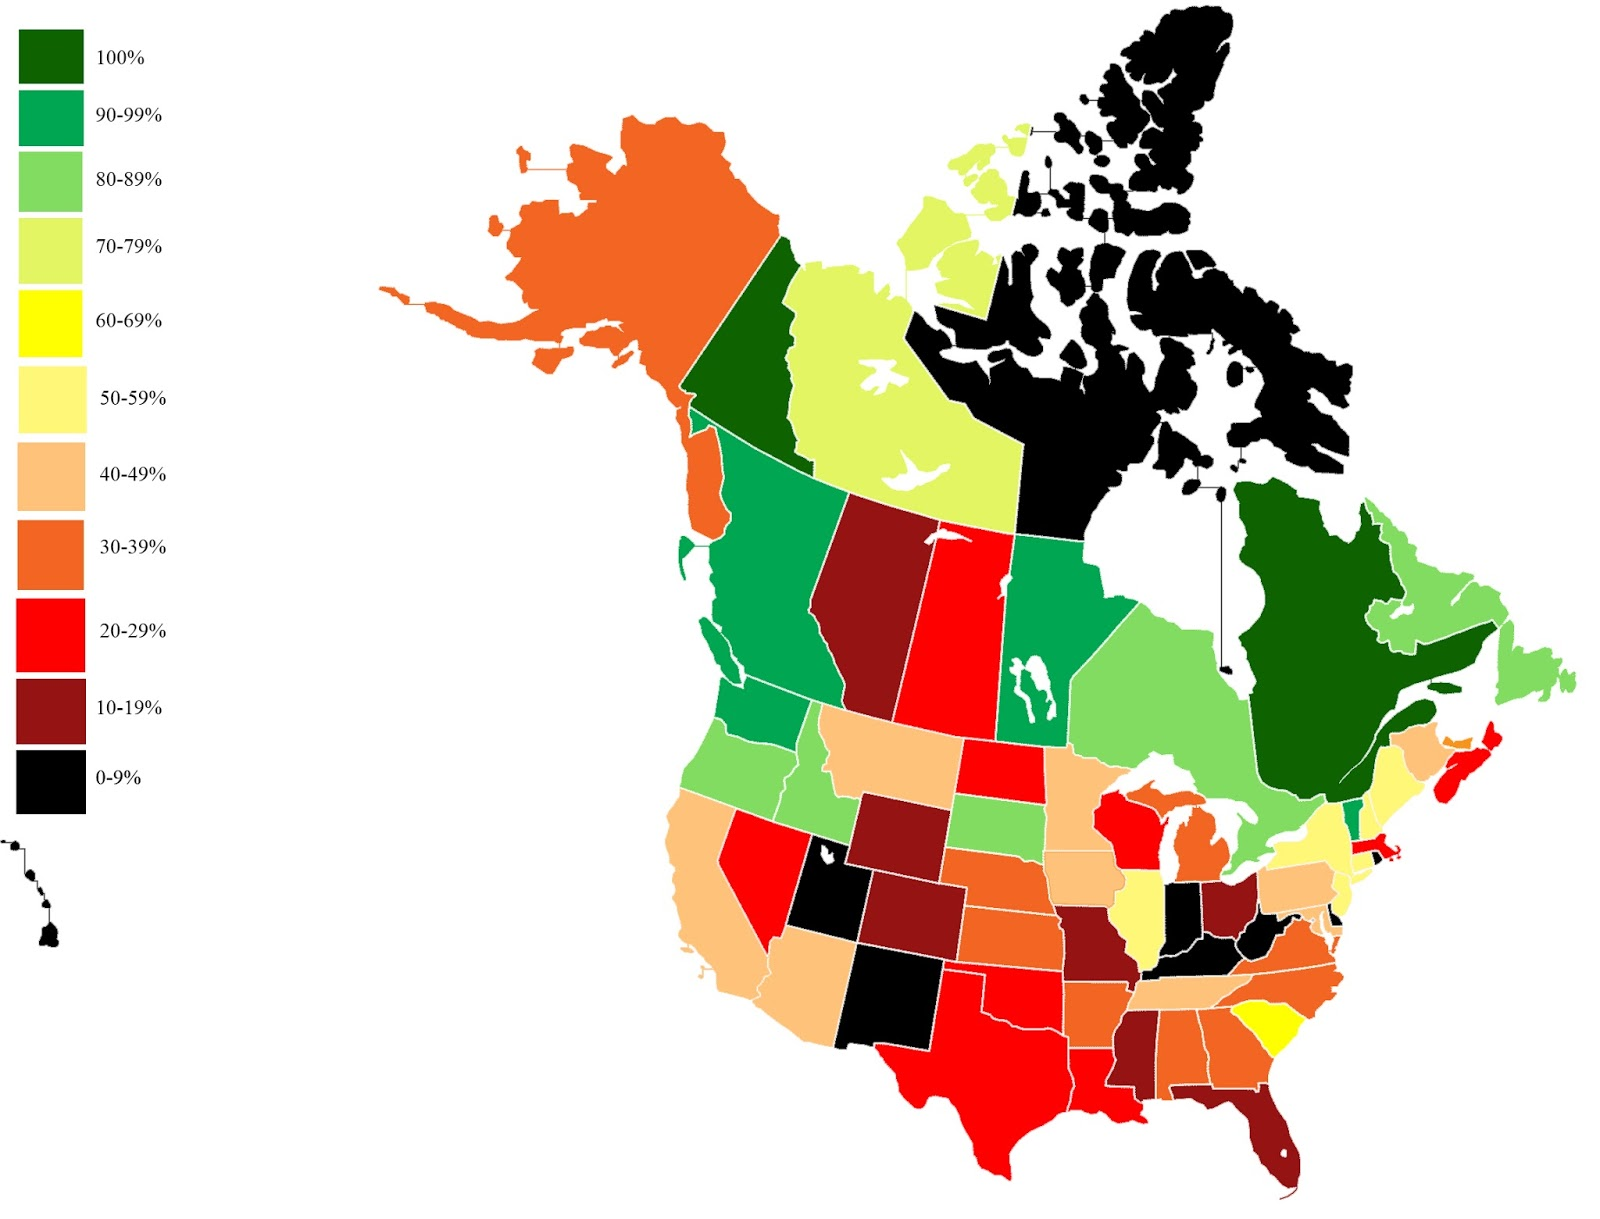 Percentage of CO2 emissions-free electricity generation in North America